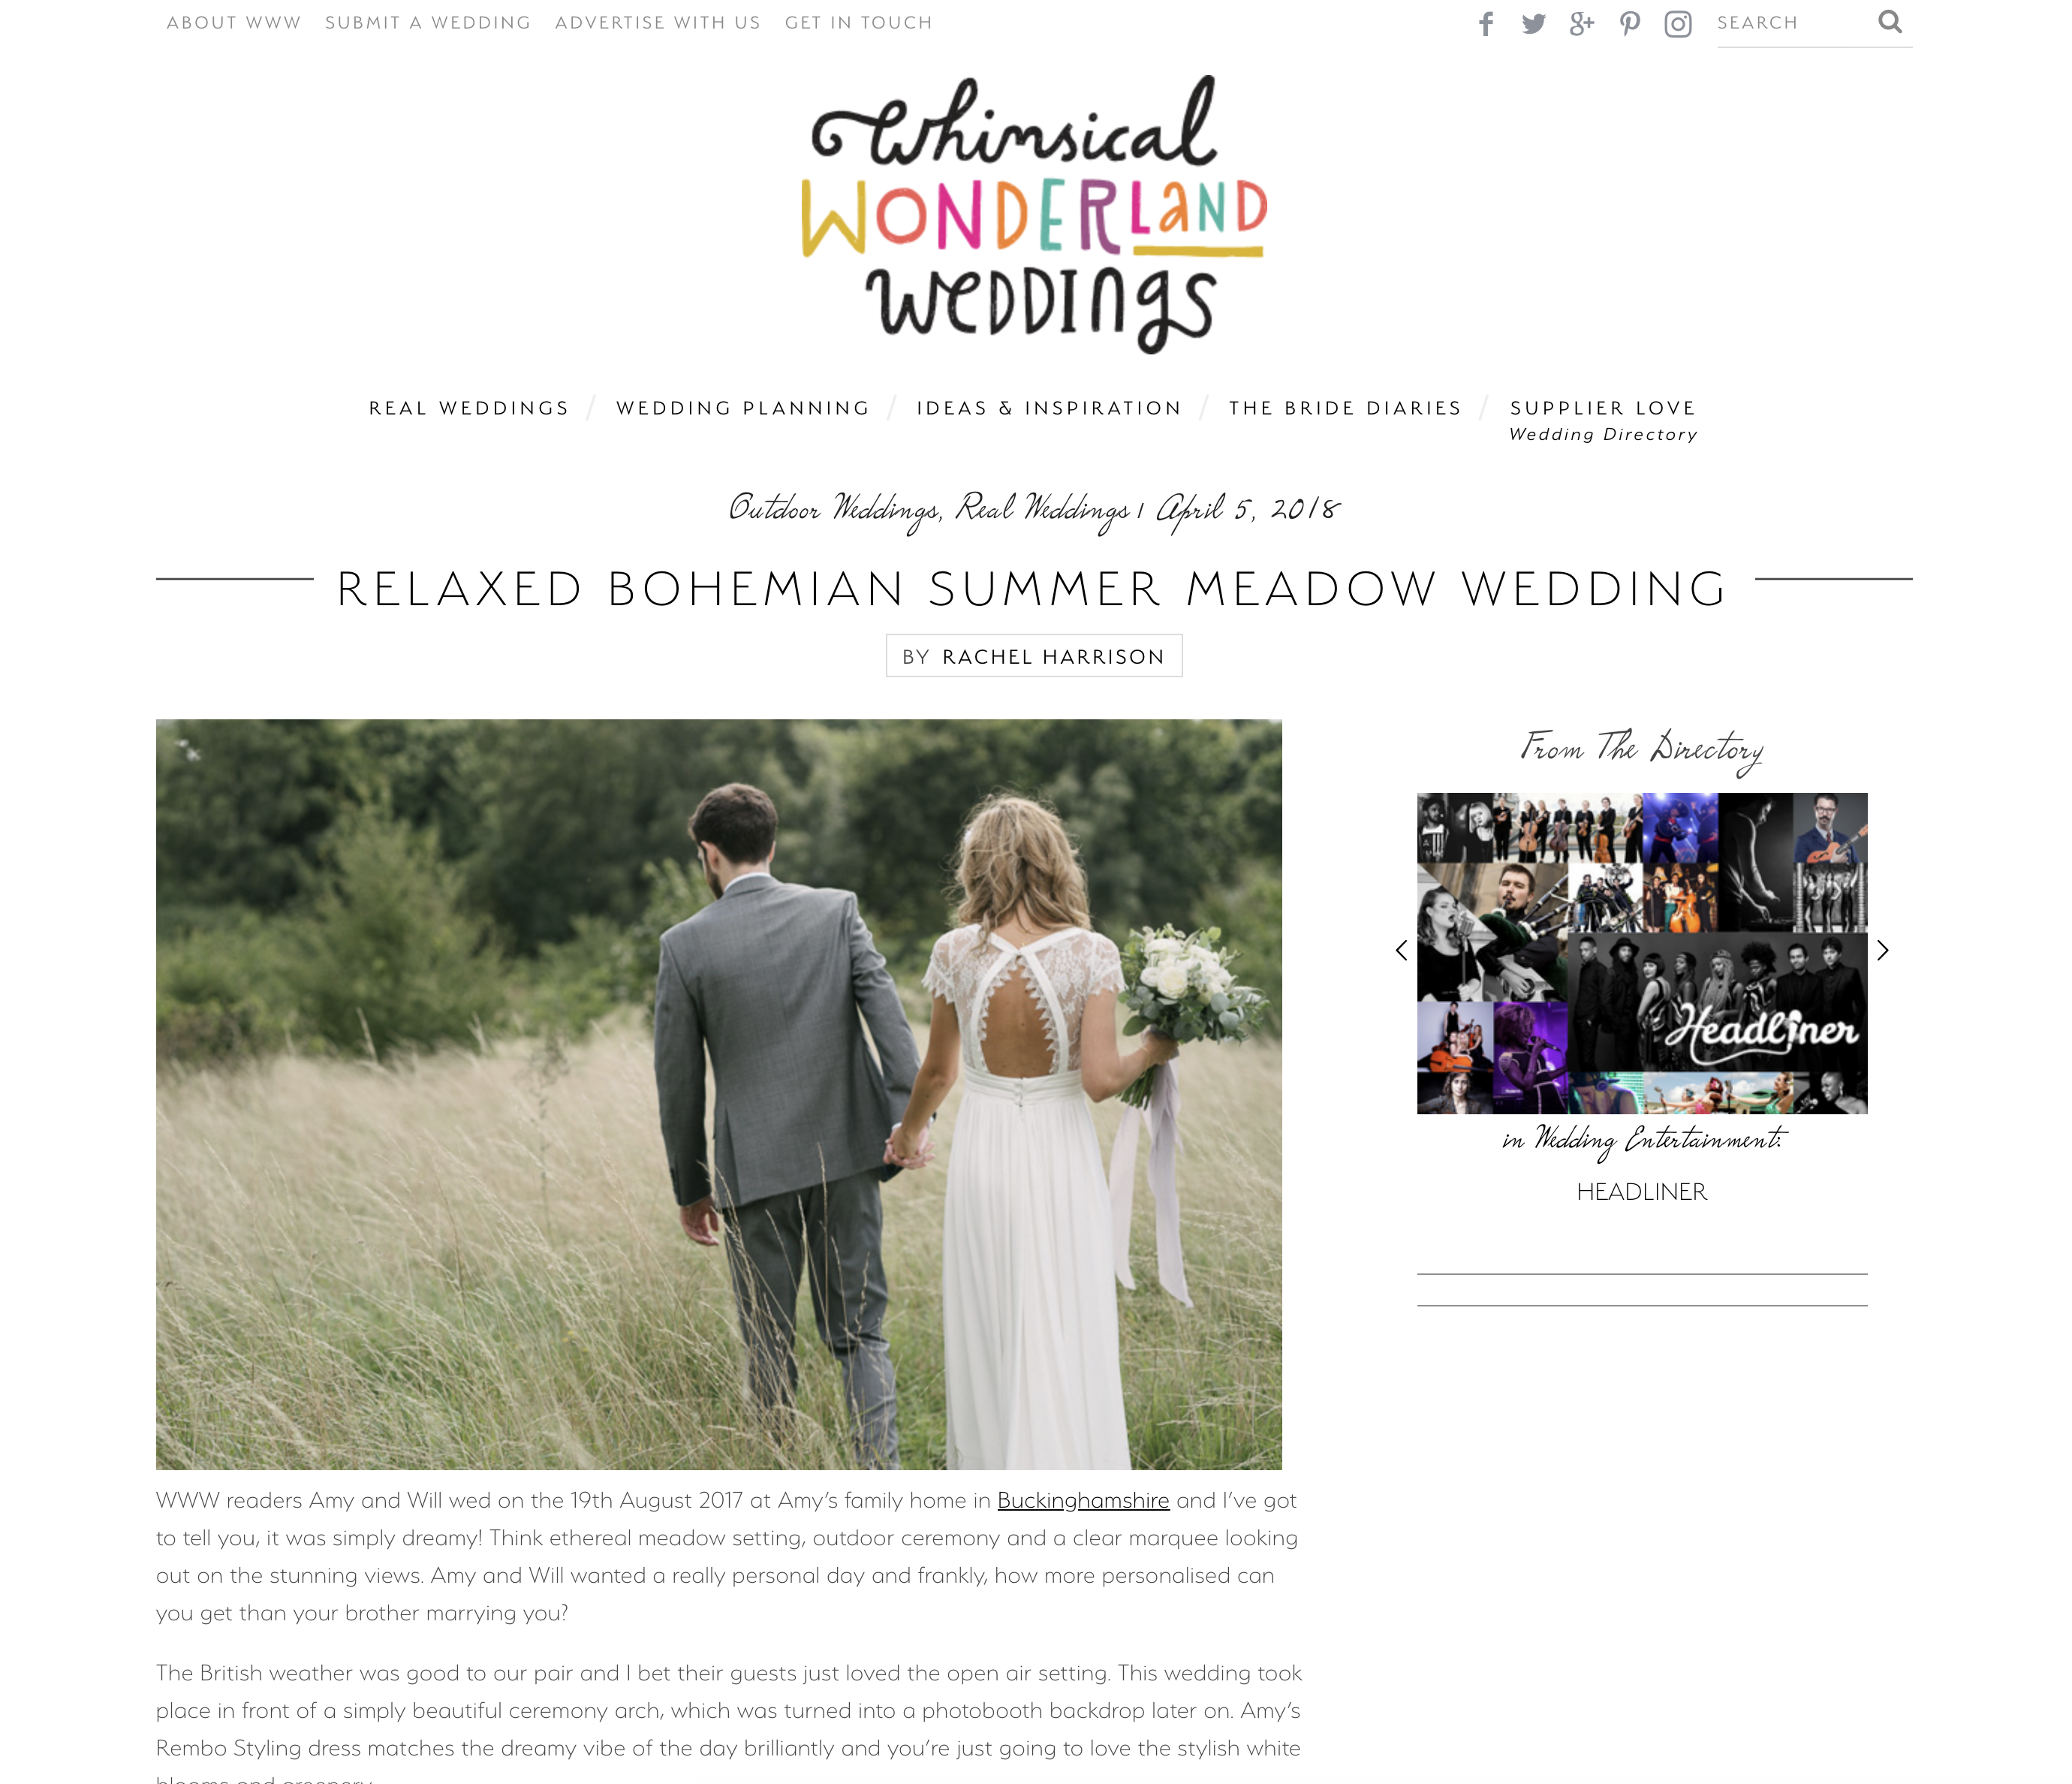 Amy and Will's Summer Meadow Wedding featured Online » Kari ...